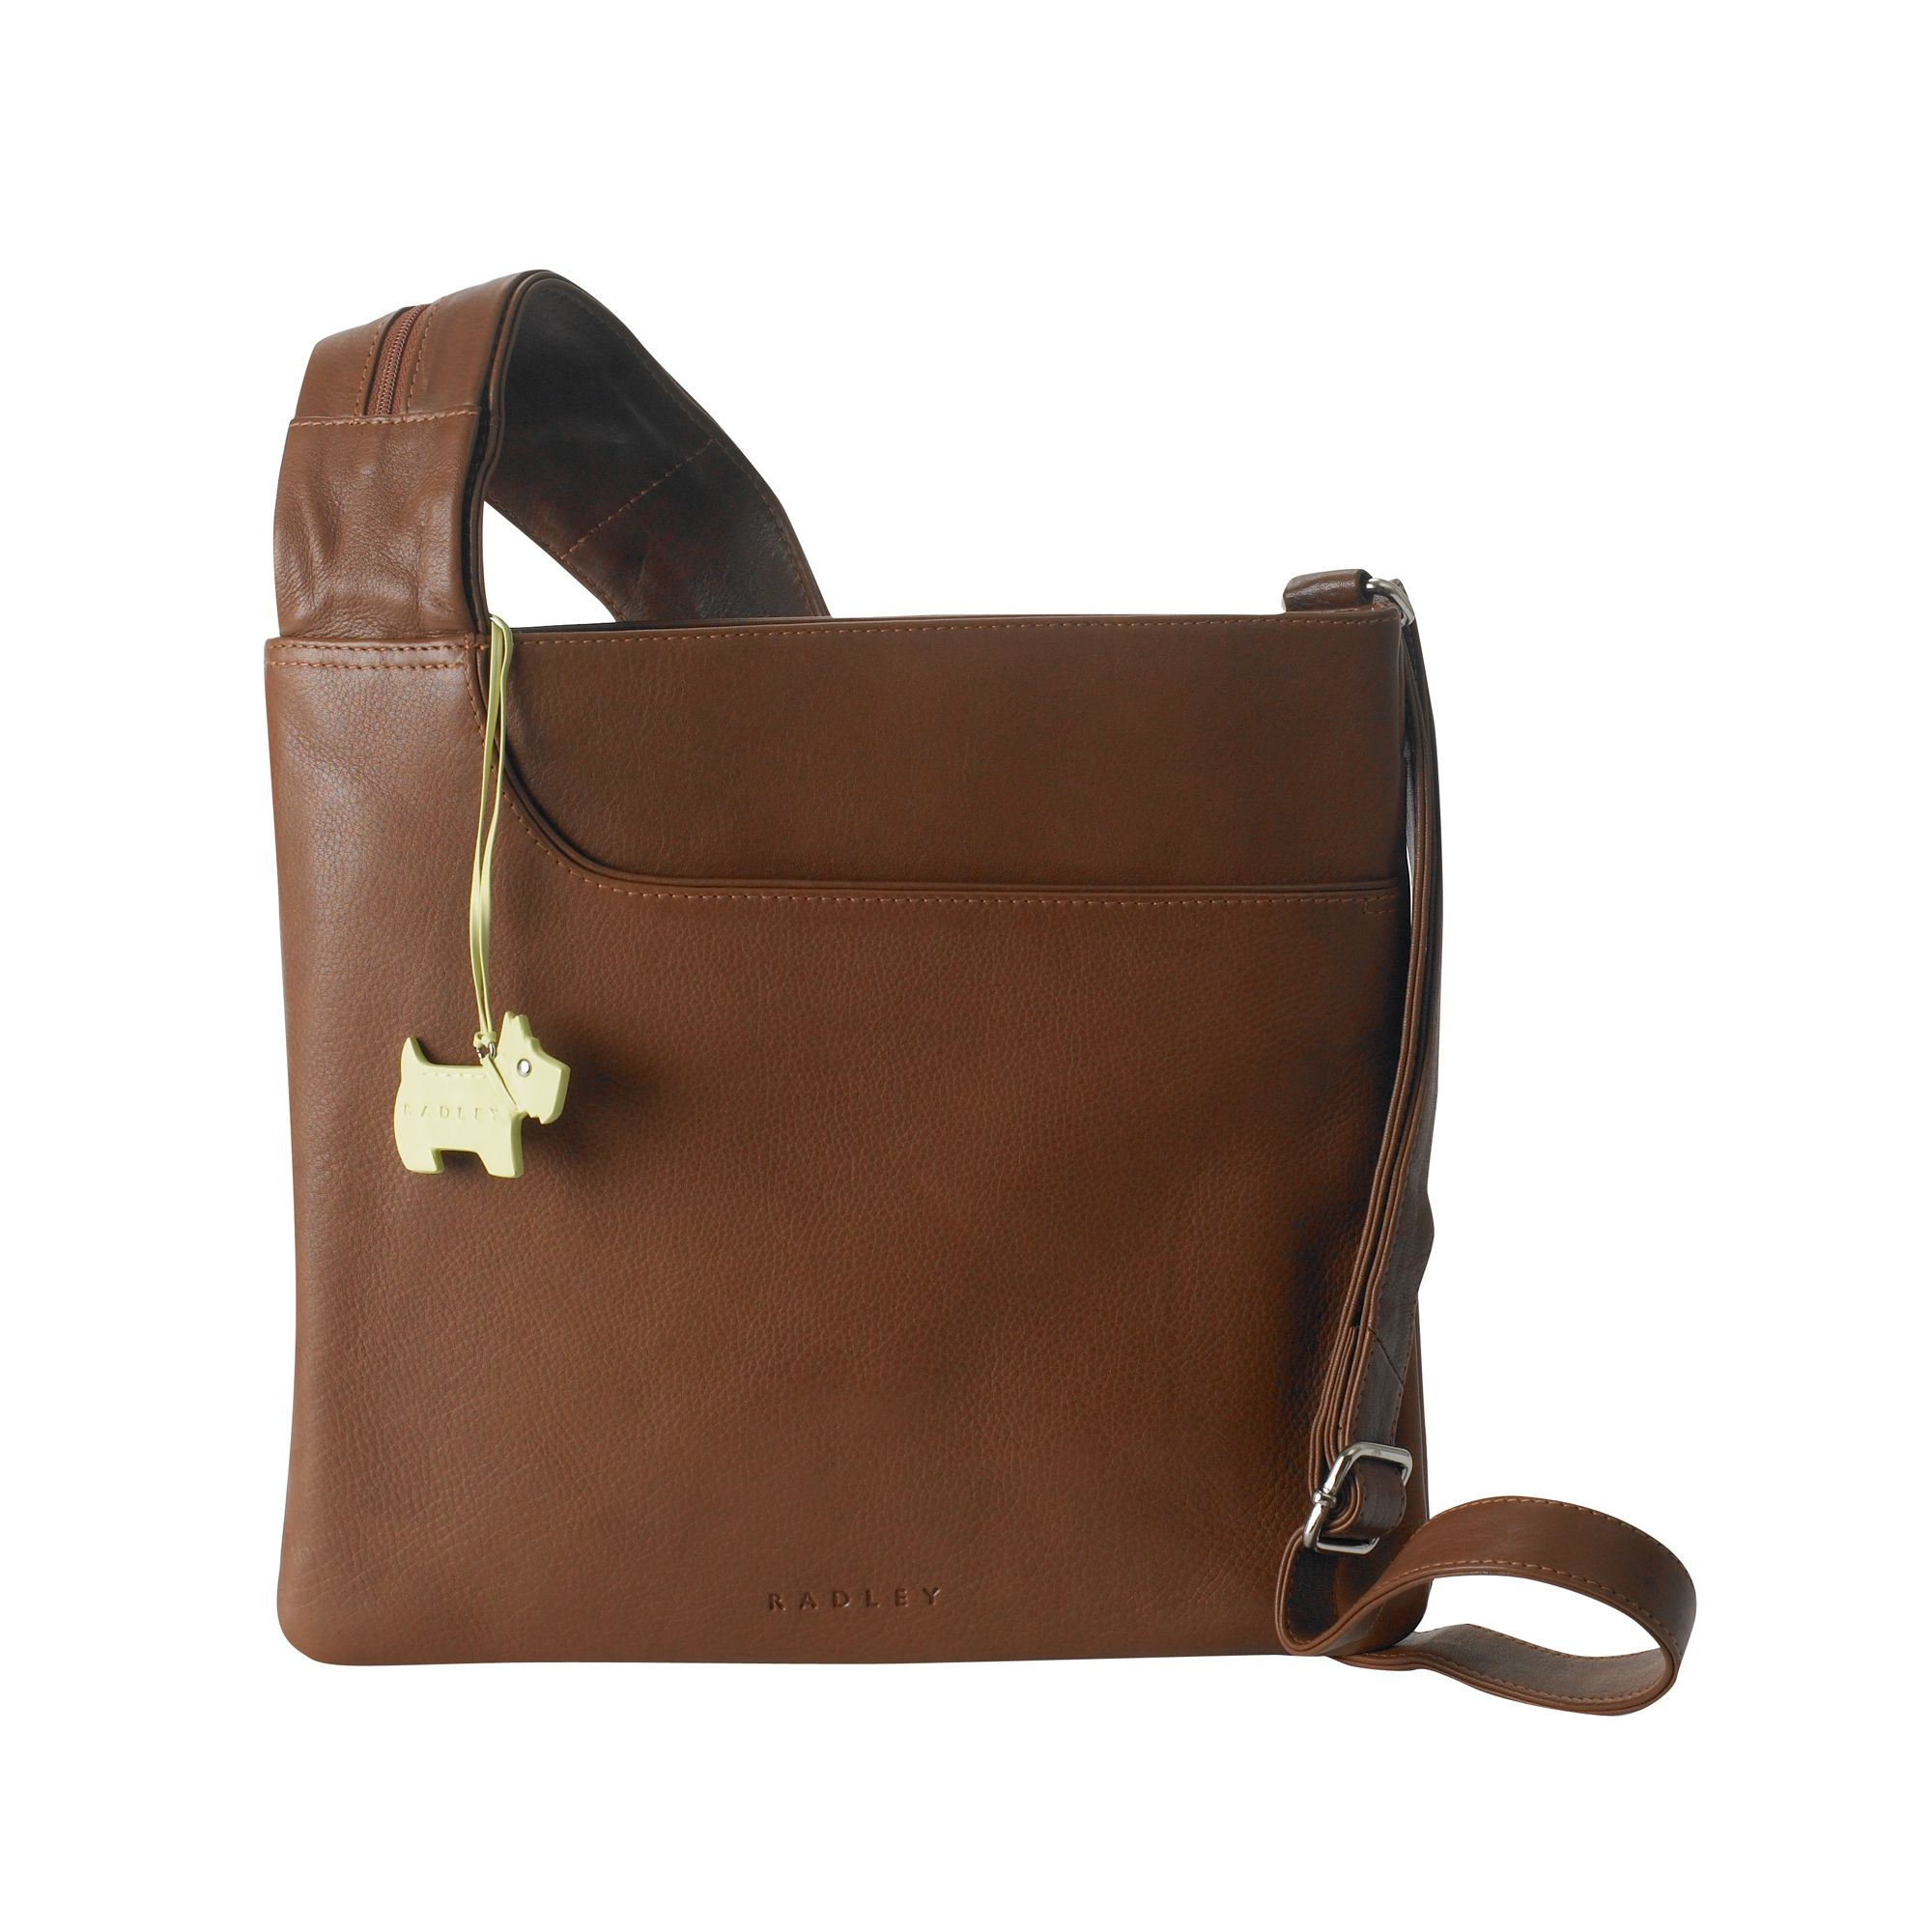 Pocket Bag large leather cross body bag